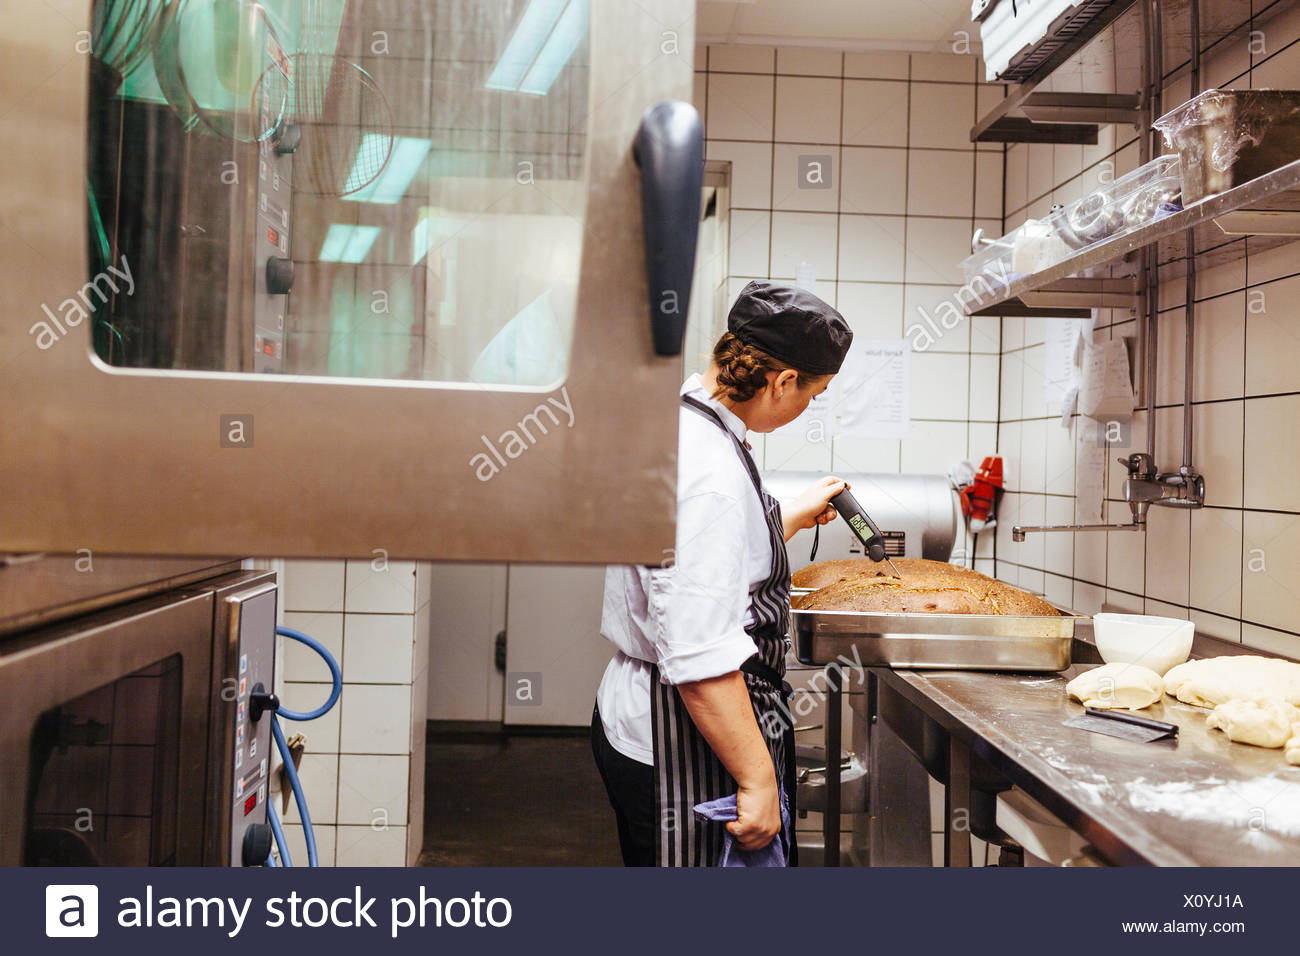 Chef checking temperature of bread in commercial kitchen - Stock Image